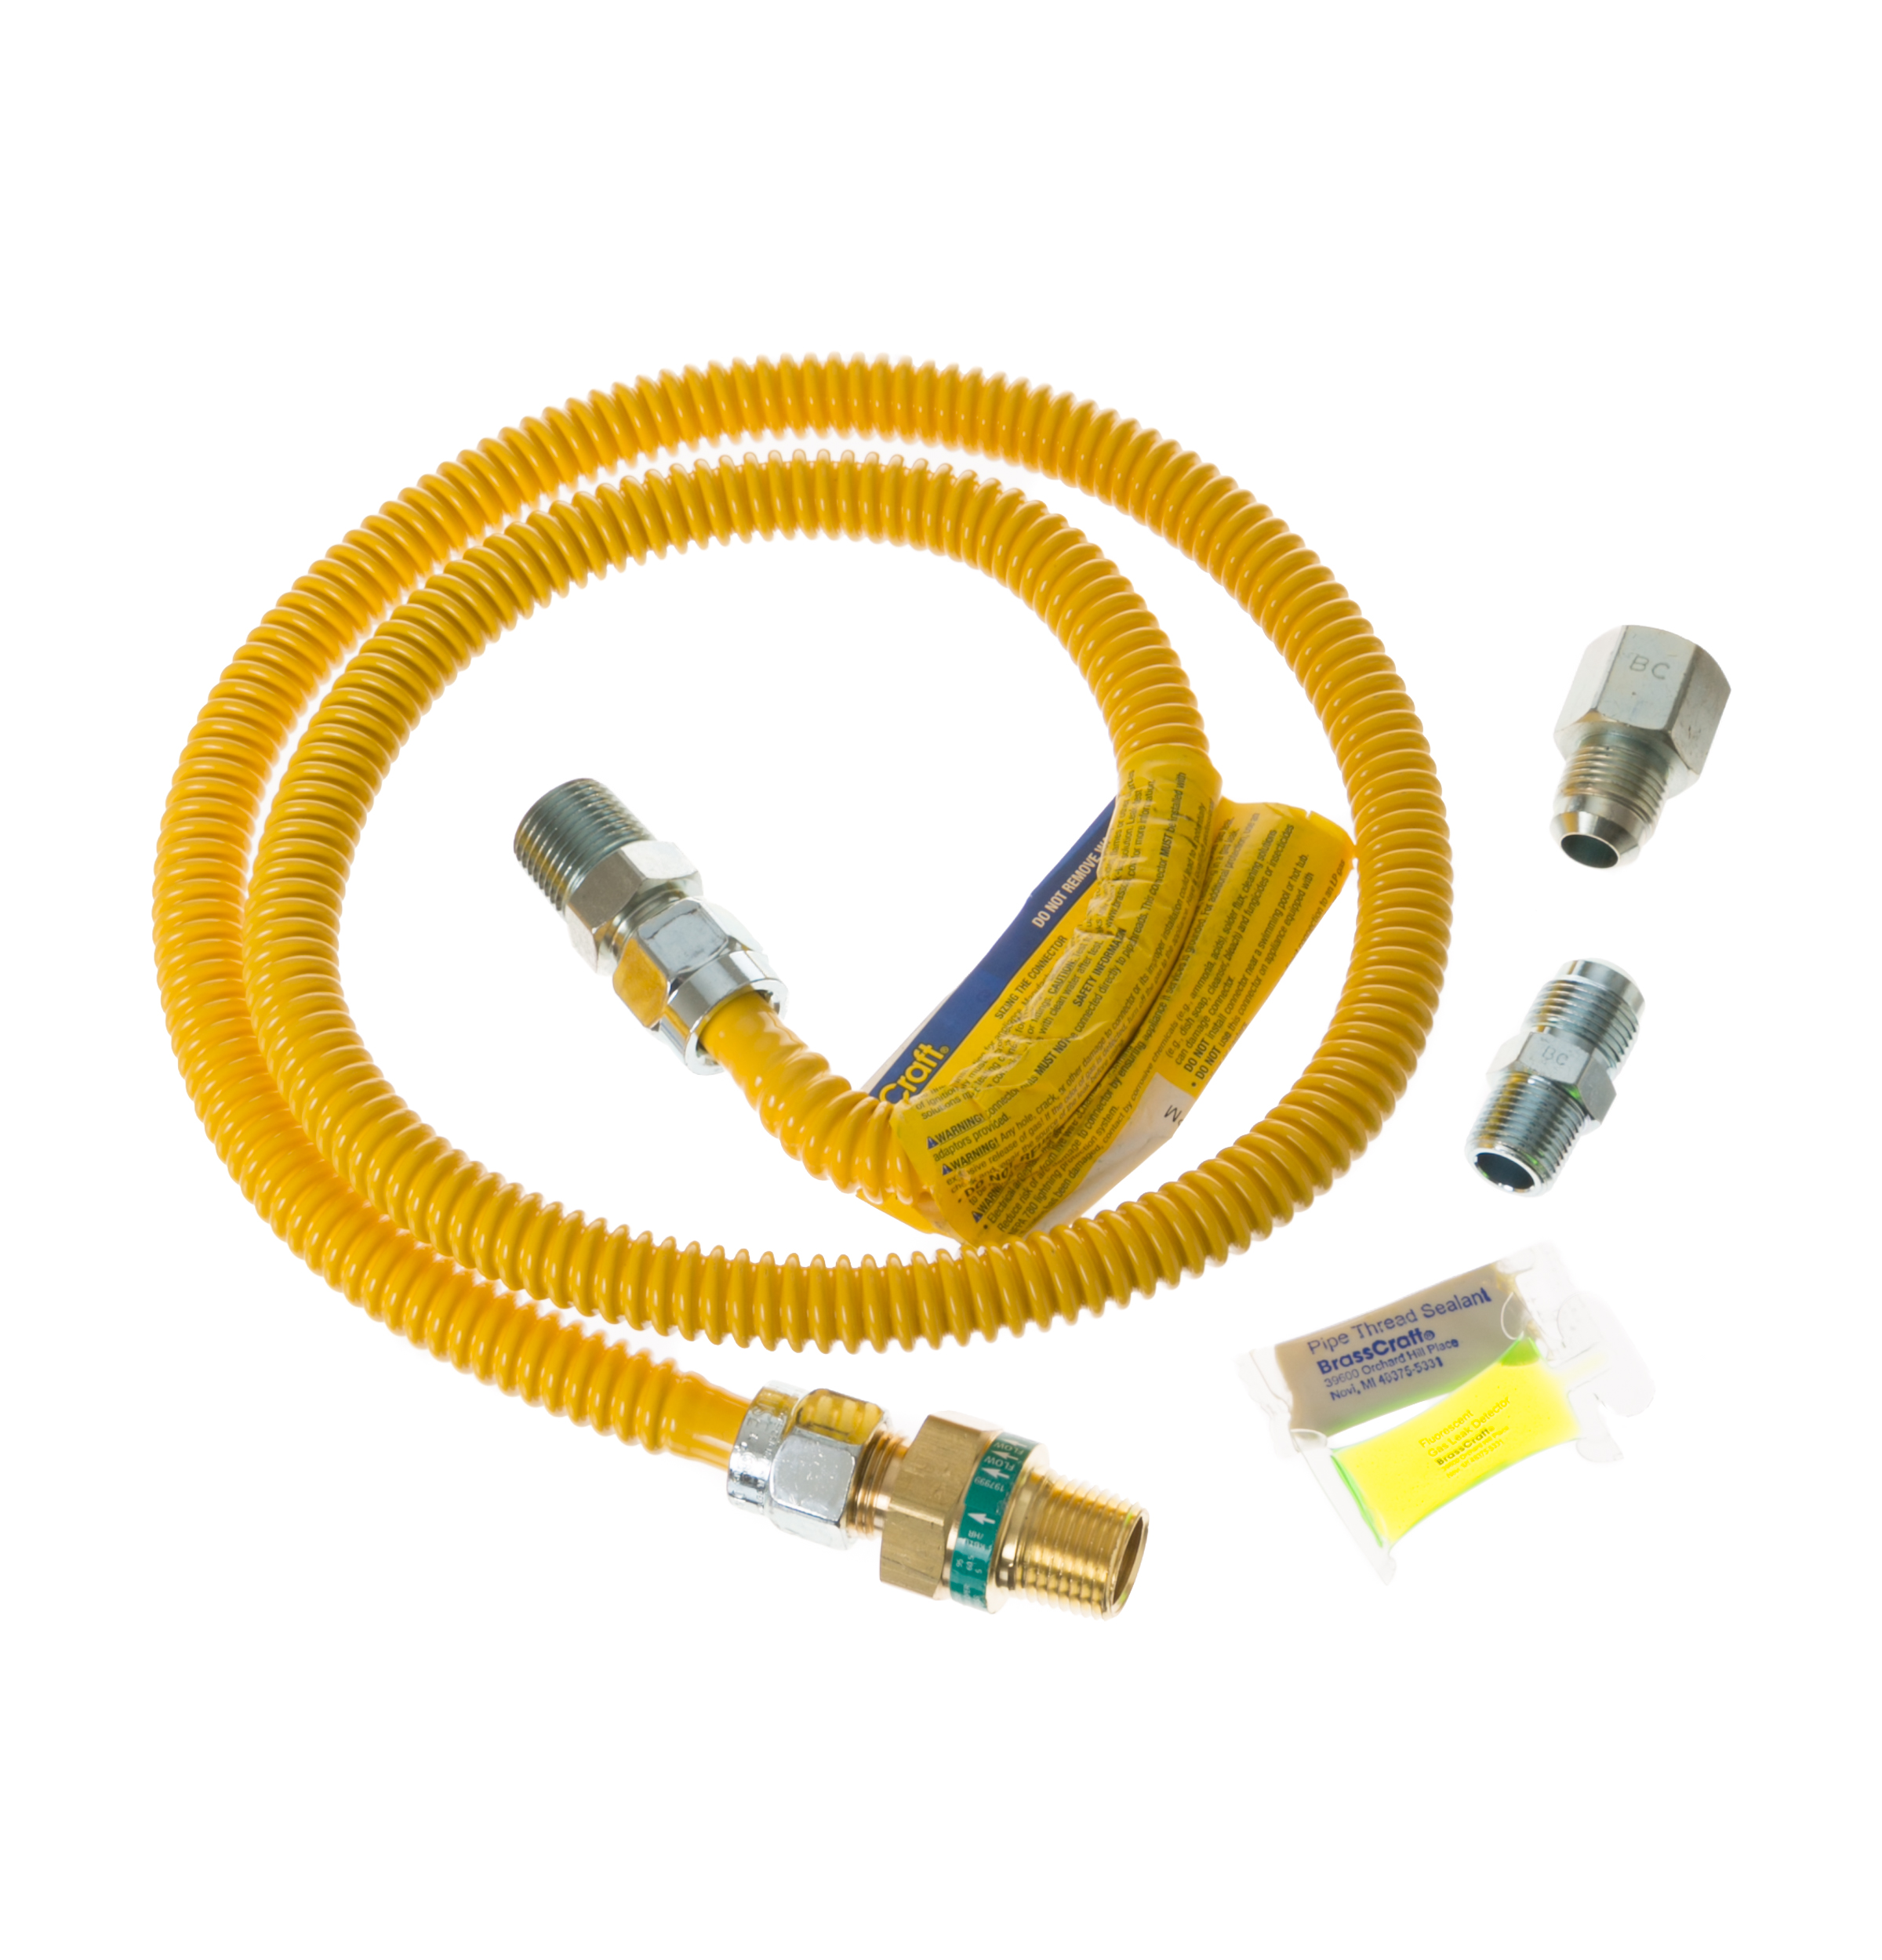 Pm15x114 4 Universal Gas Dryer Installation Kit With Auto Shutoff Wire Connection Diagram Product Image